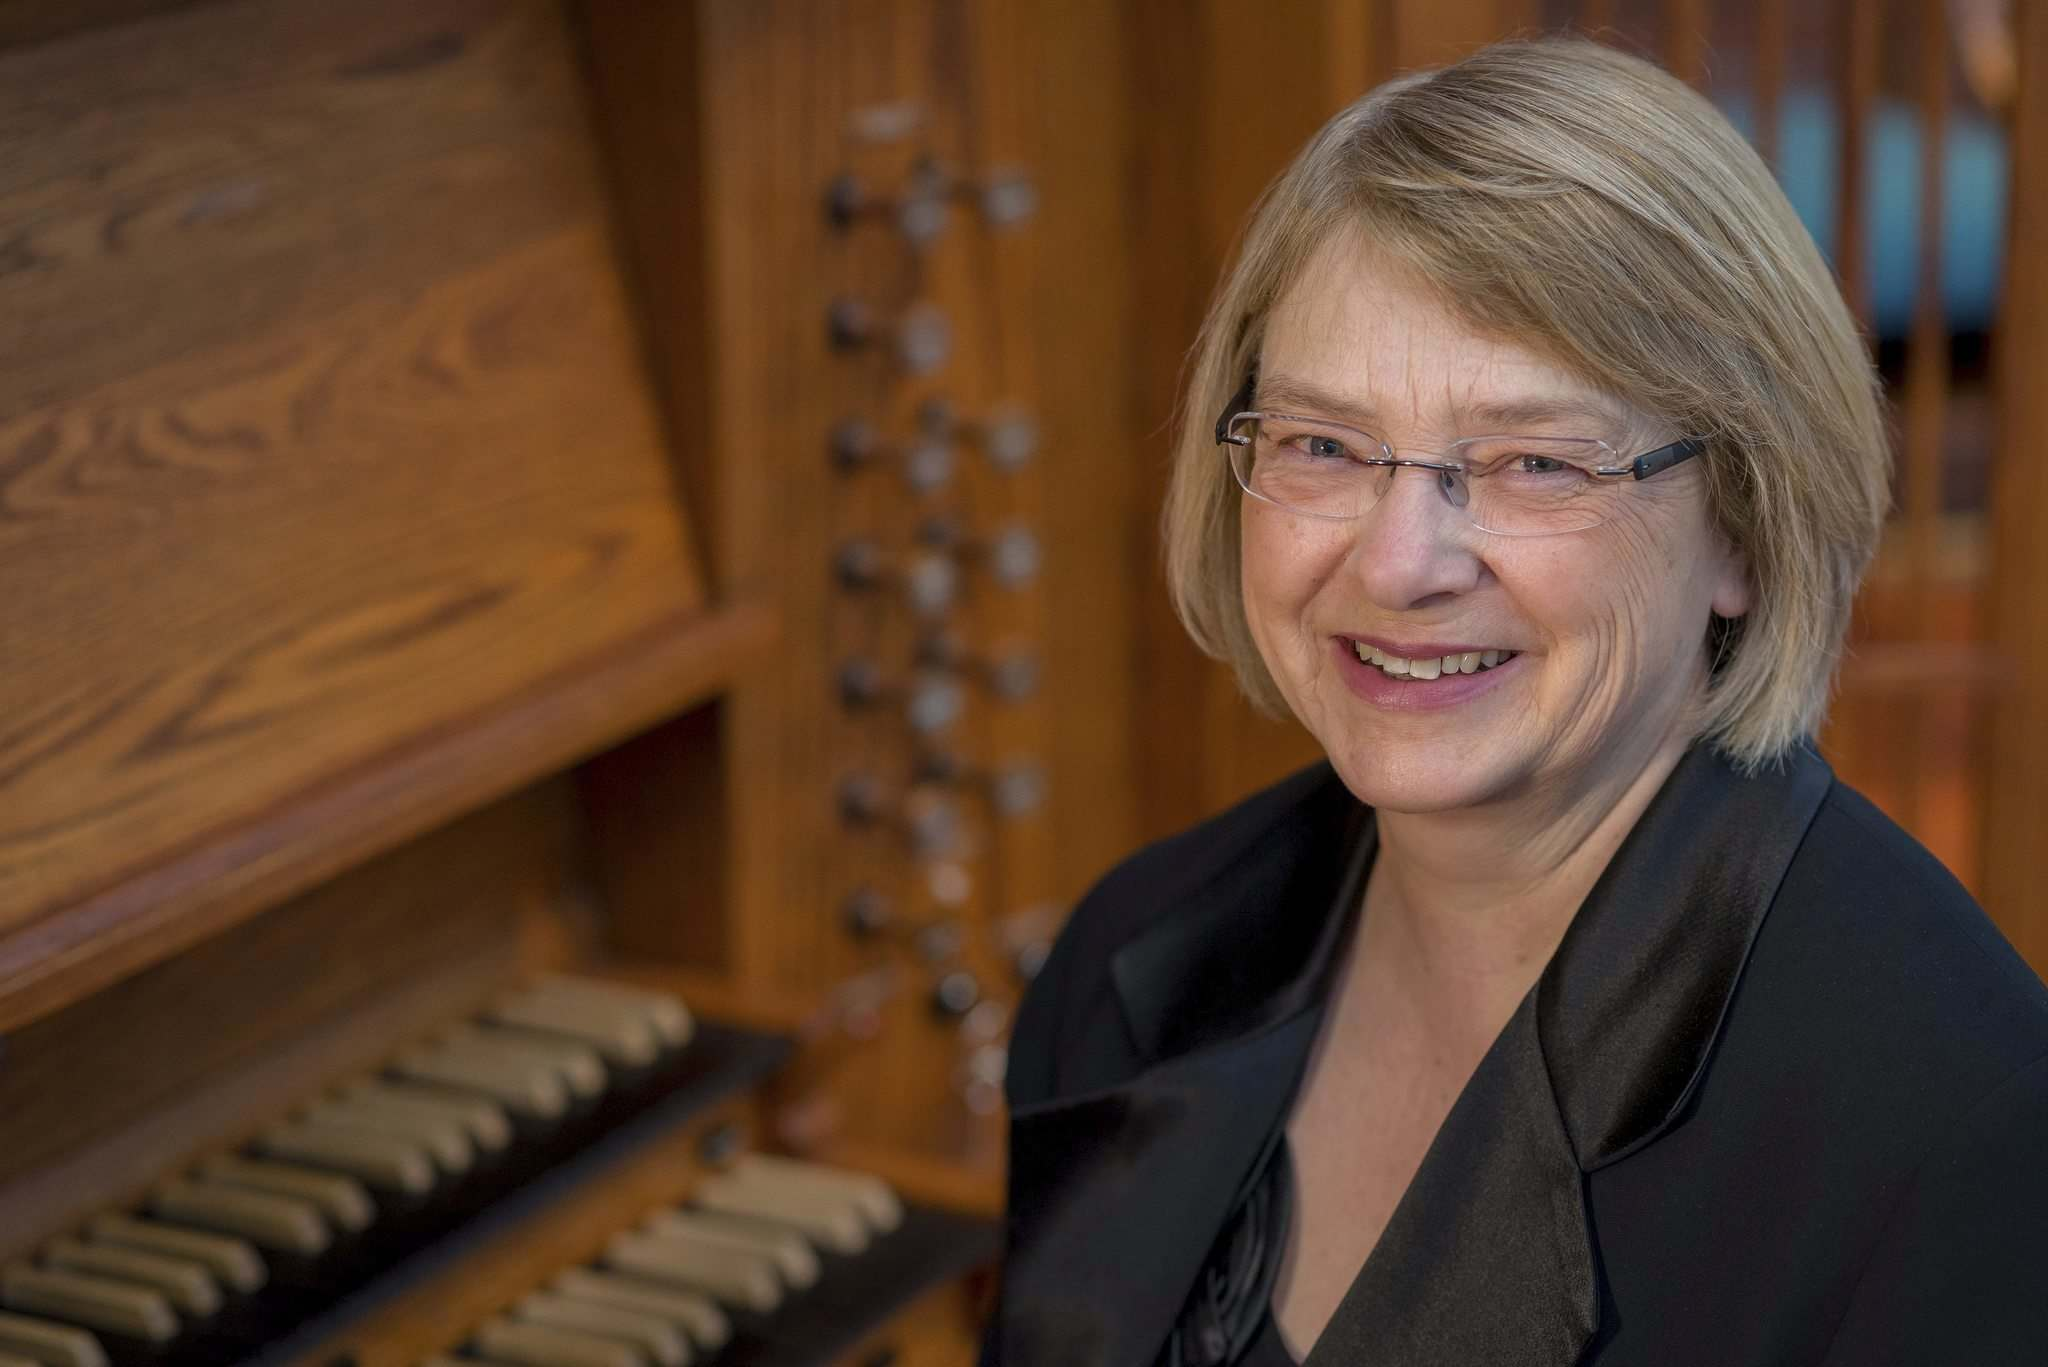 Lottie Enns-Braun, organist at Young United Church, sits with the church's organ. (Anthony Mark Schellenberg photo)</p>